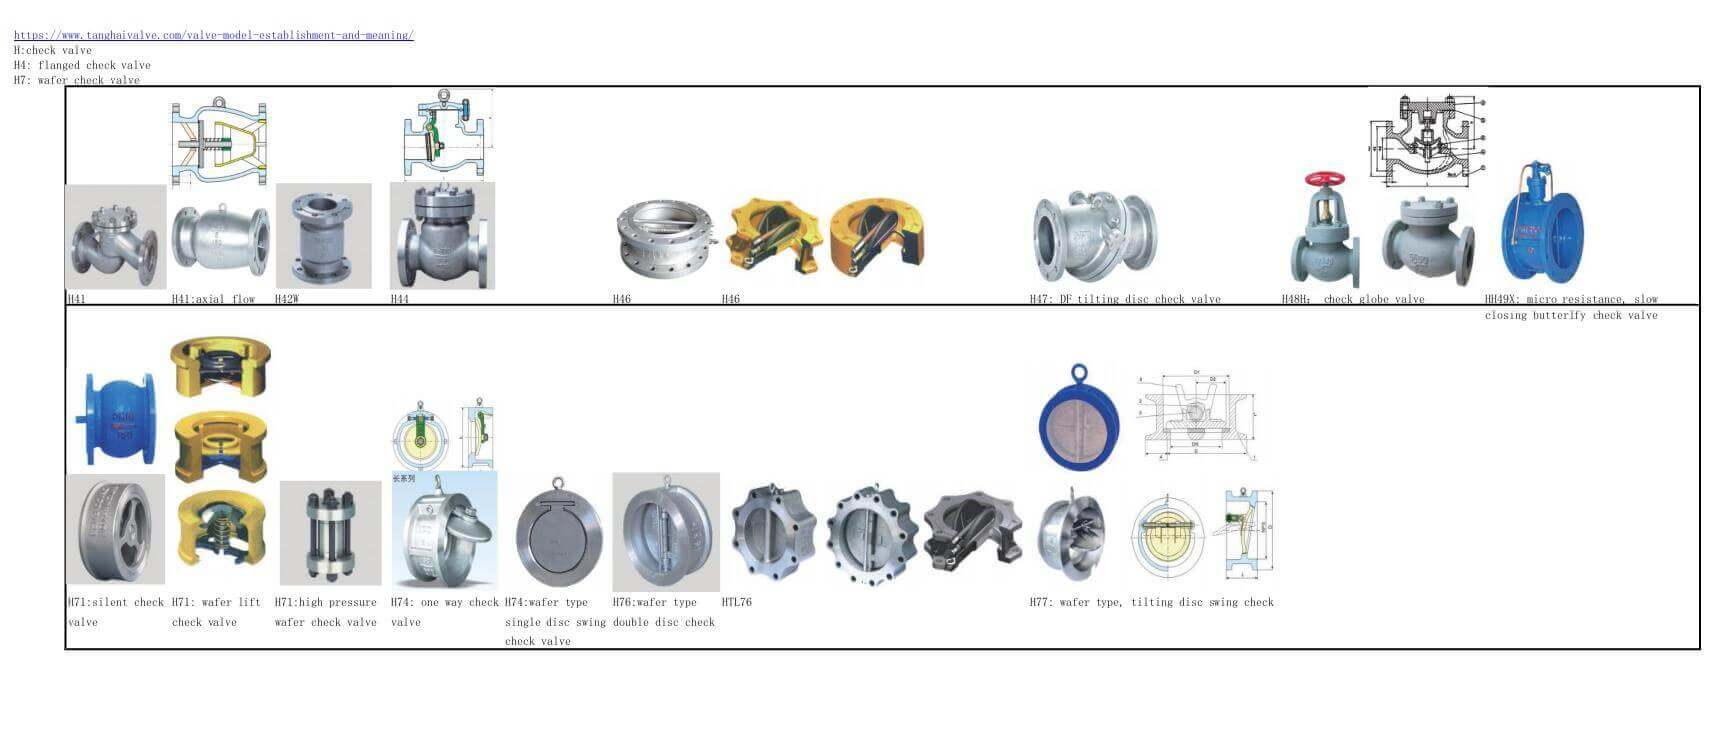 all types of check valve and structures -code names-photos